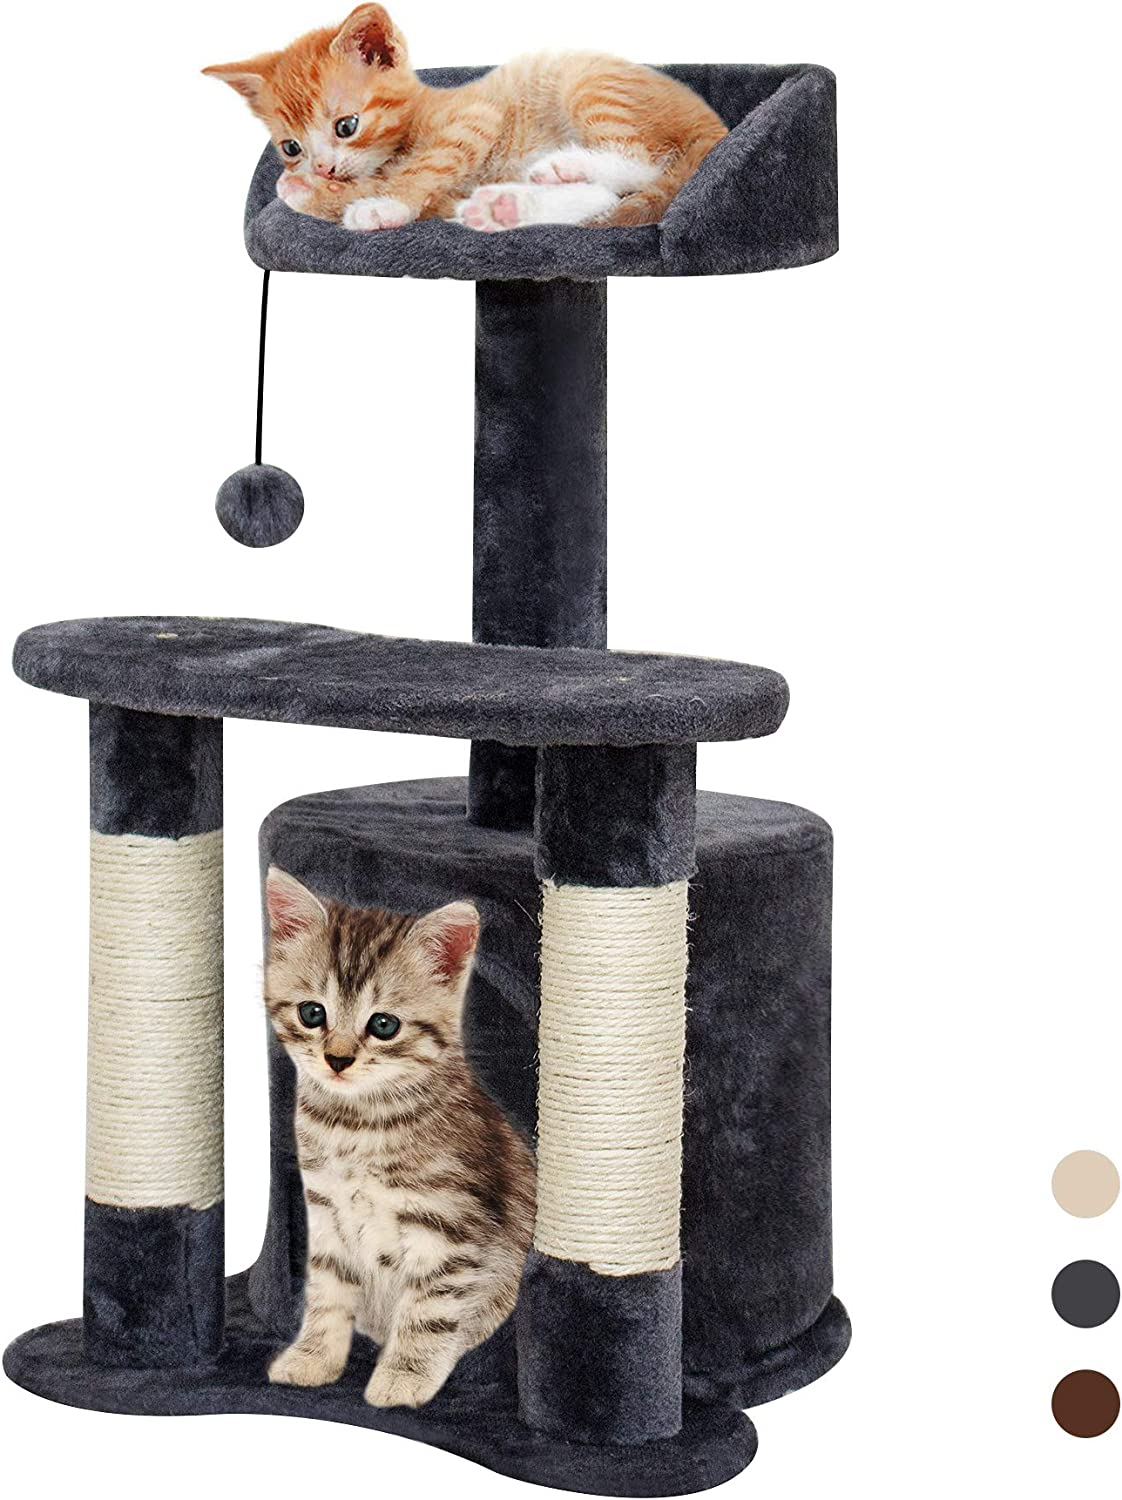 XJD Cat Tree Tower Cat Furniture Scratching Post Climber House Cat Play Tower Grey, A